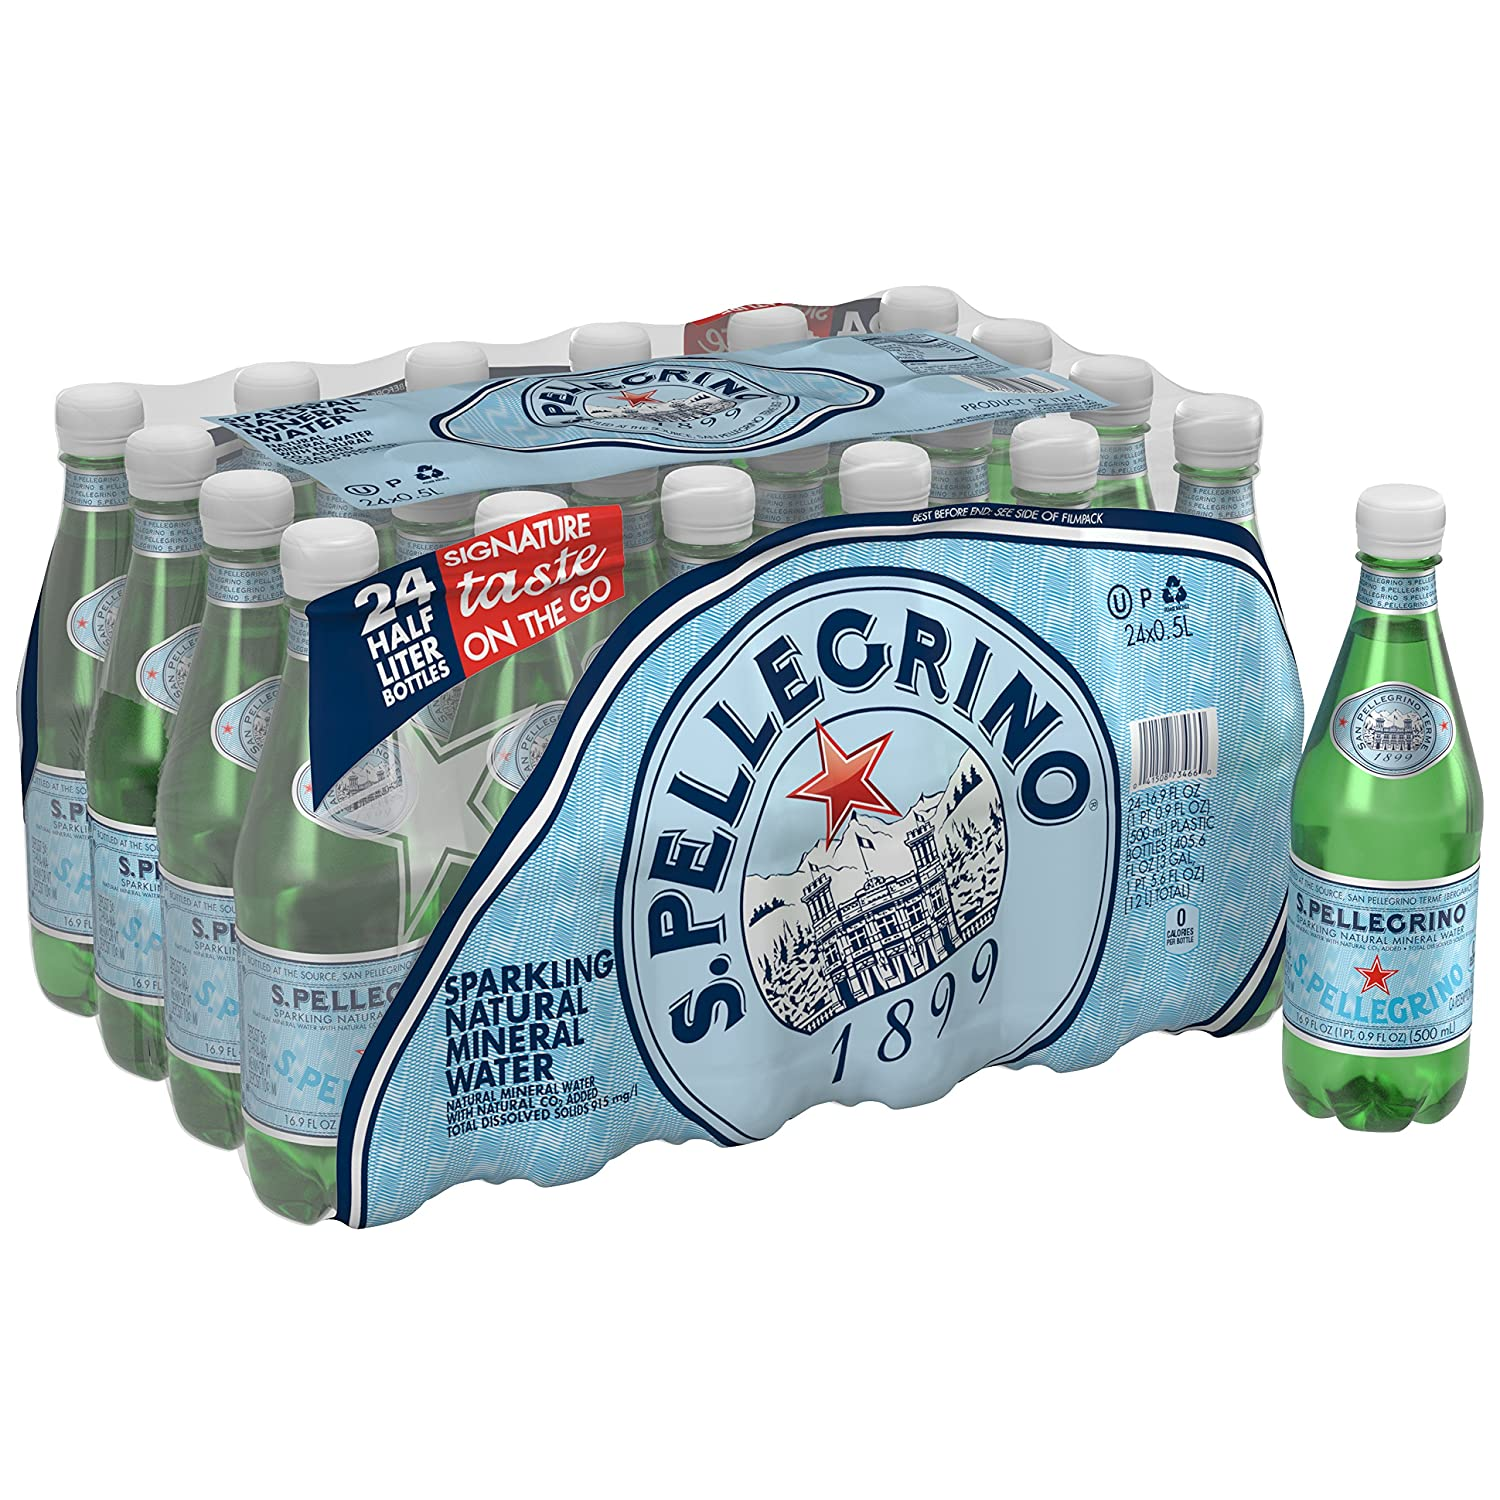 Sllegrino sparkling natural mineral water 169 fl oz 24 sllegrino sparkling natural mineral water 169 fl oz 24 count amazon grocery gourmet food biocorpaavc